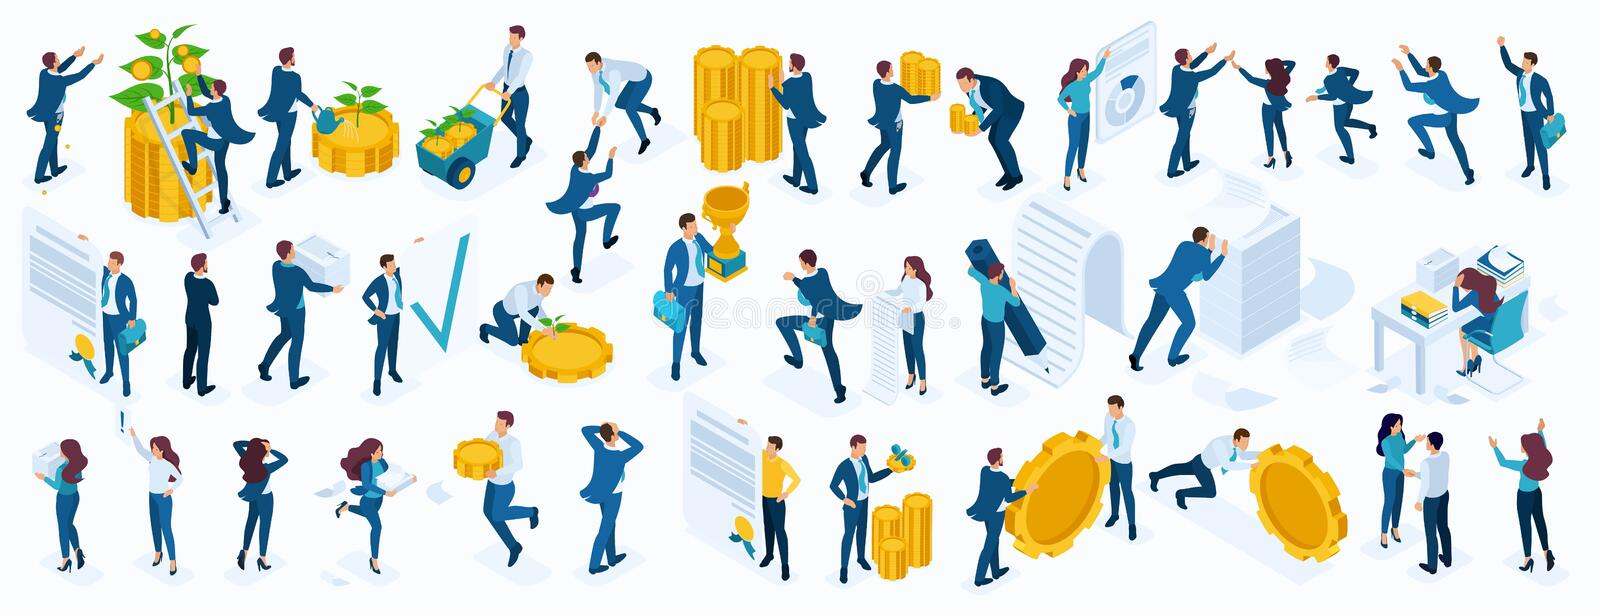 Large Isometric set of business people, businessmen, businesswoman, employees, investors, Directors, accountants, managers. Large Isometric set of business royalty free illustration